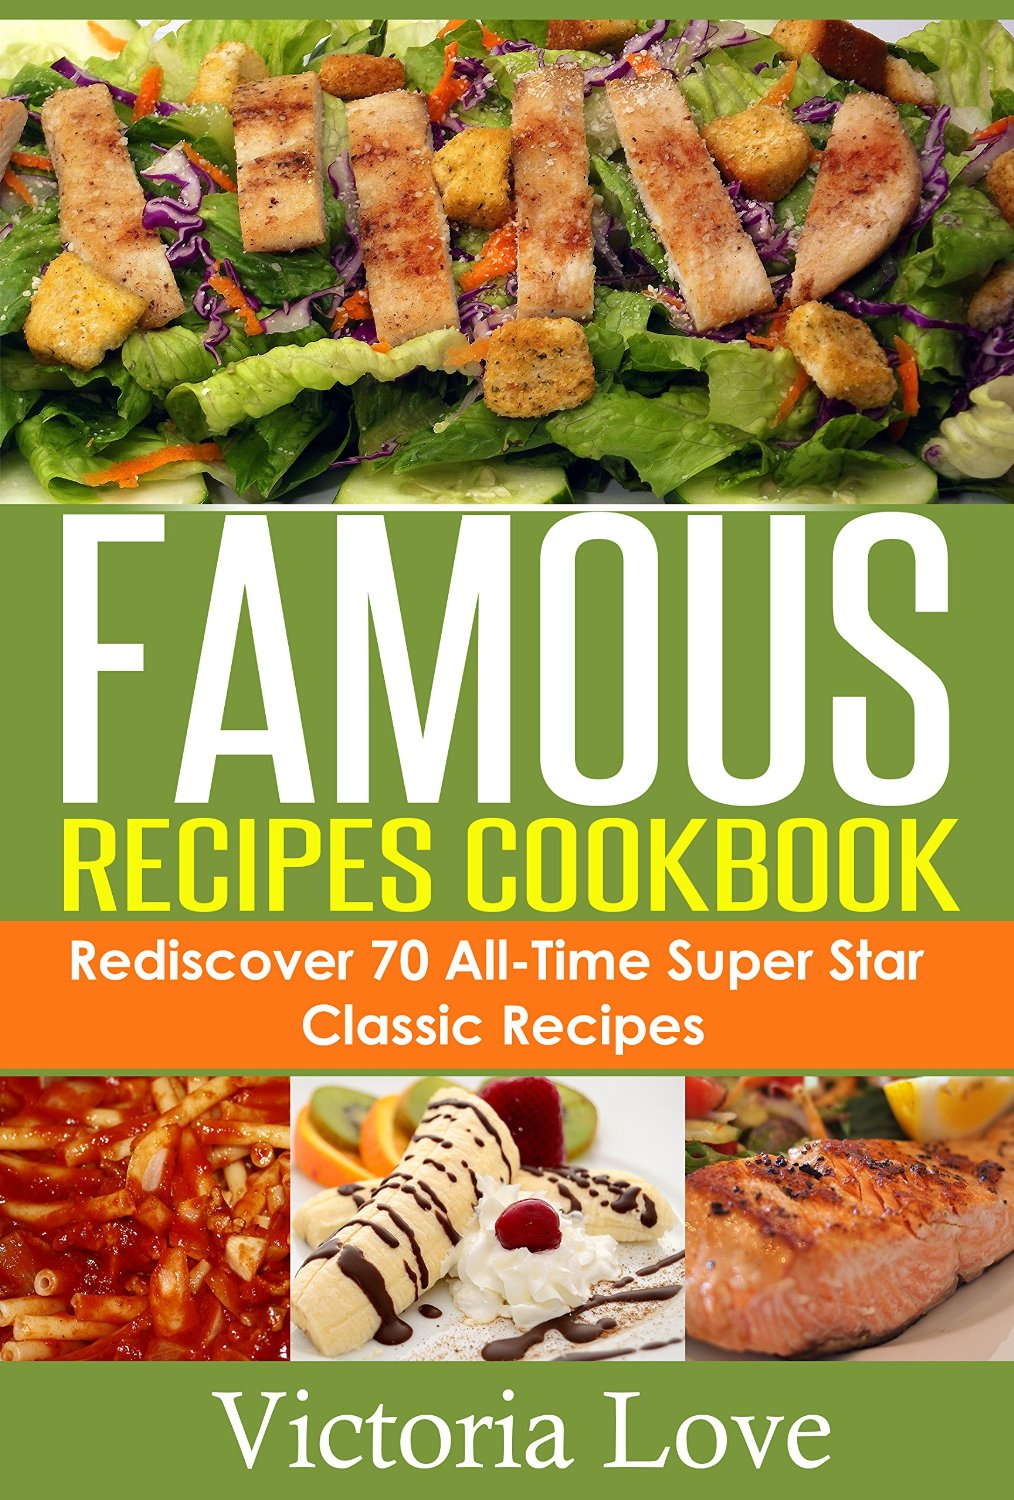 Famous Recipes Cookbook: 70 All-Time Favorite Classic Cooking Recipes! free download